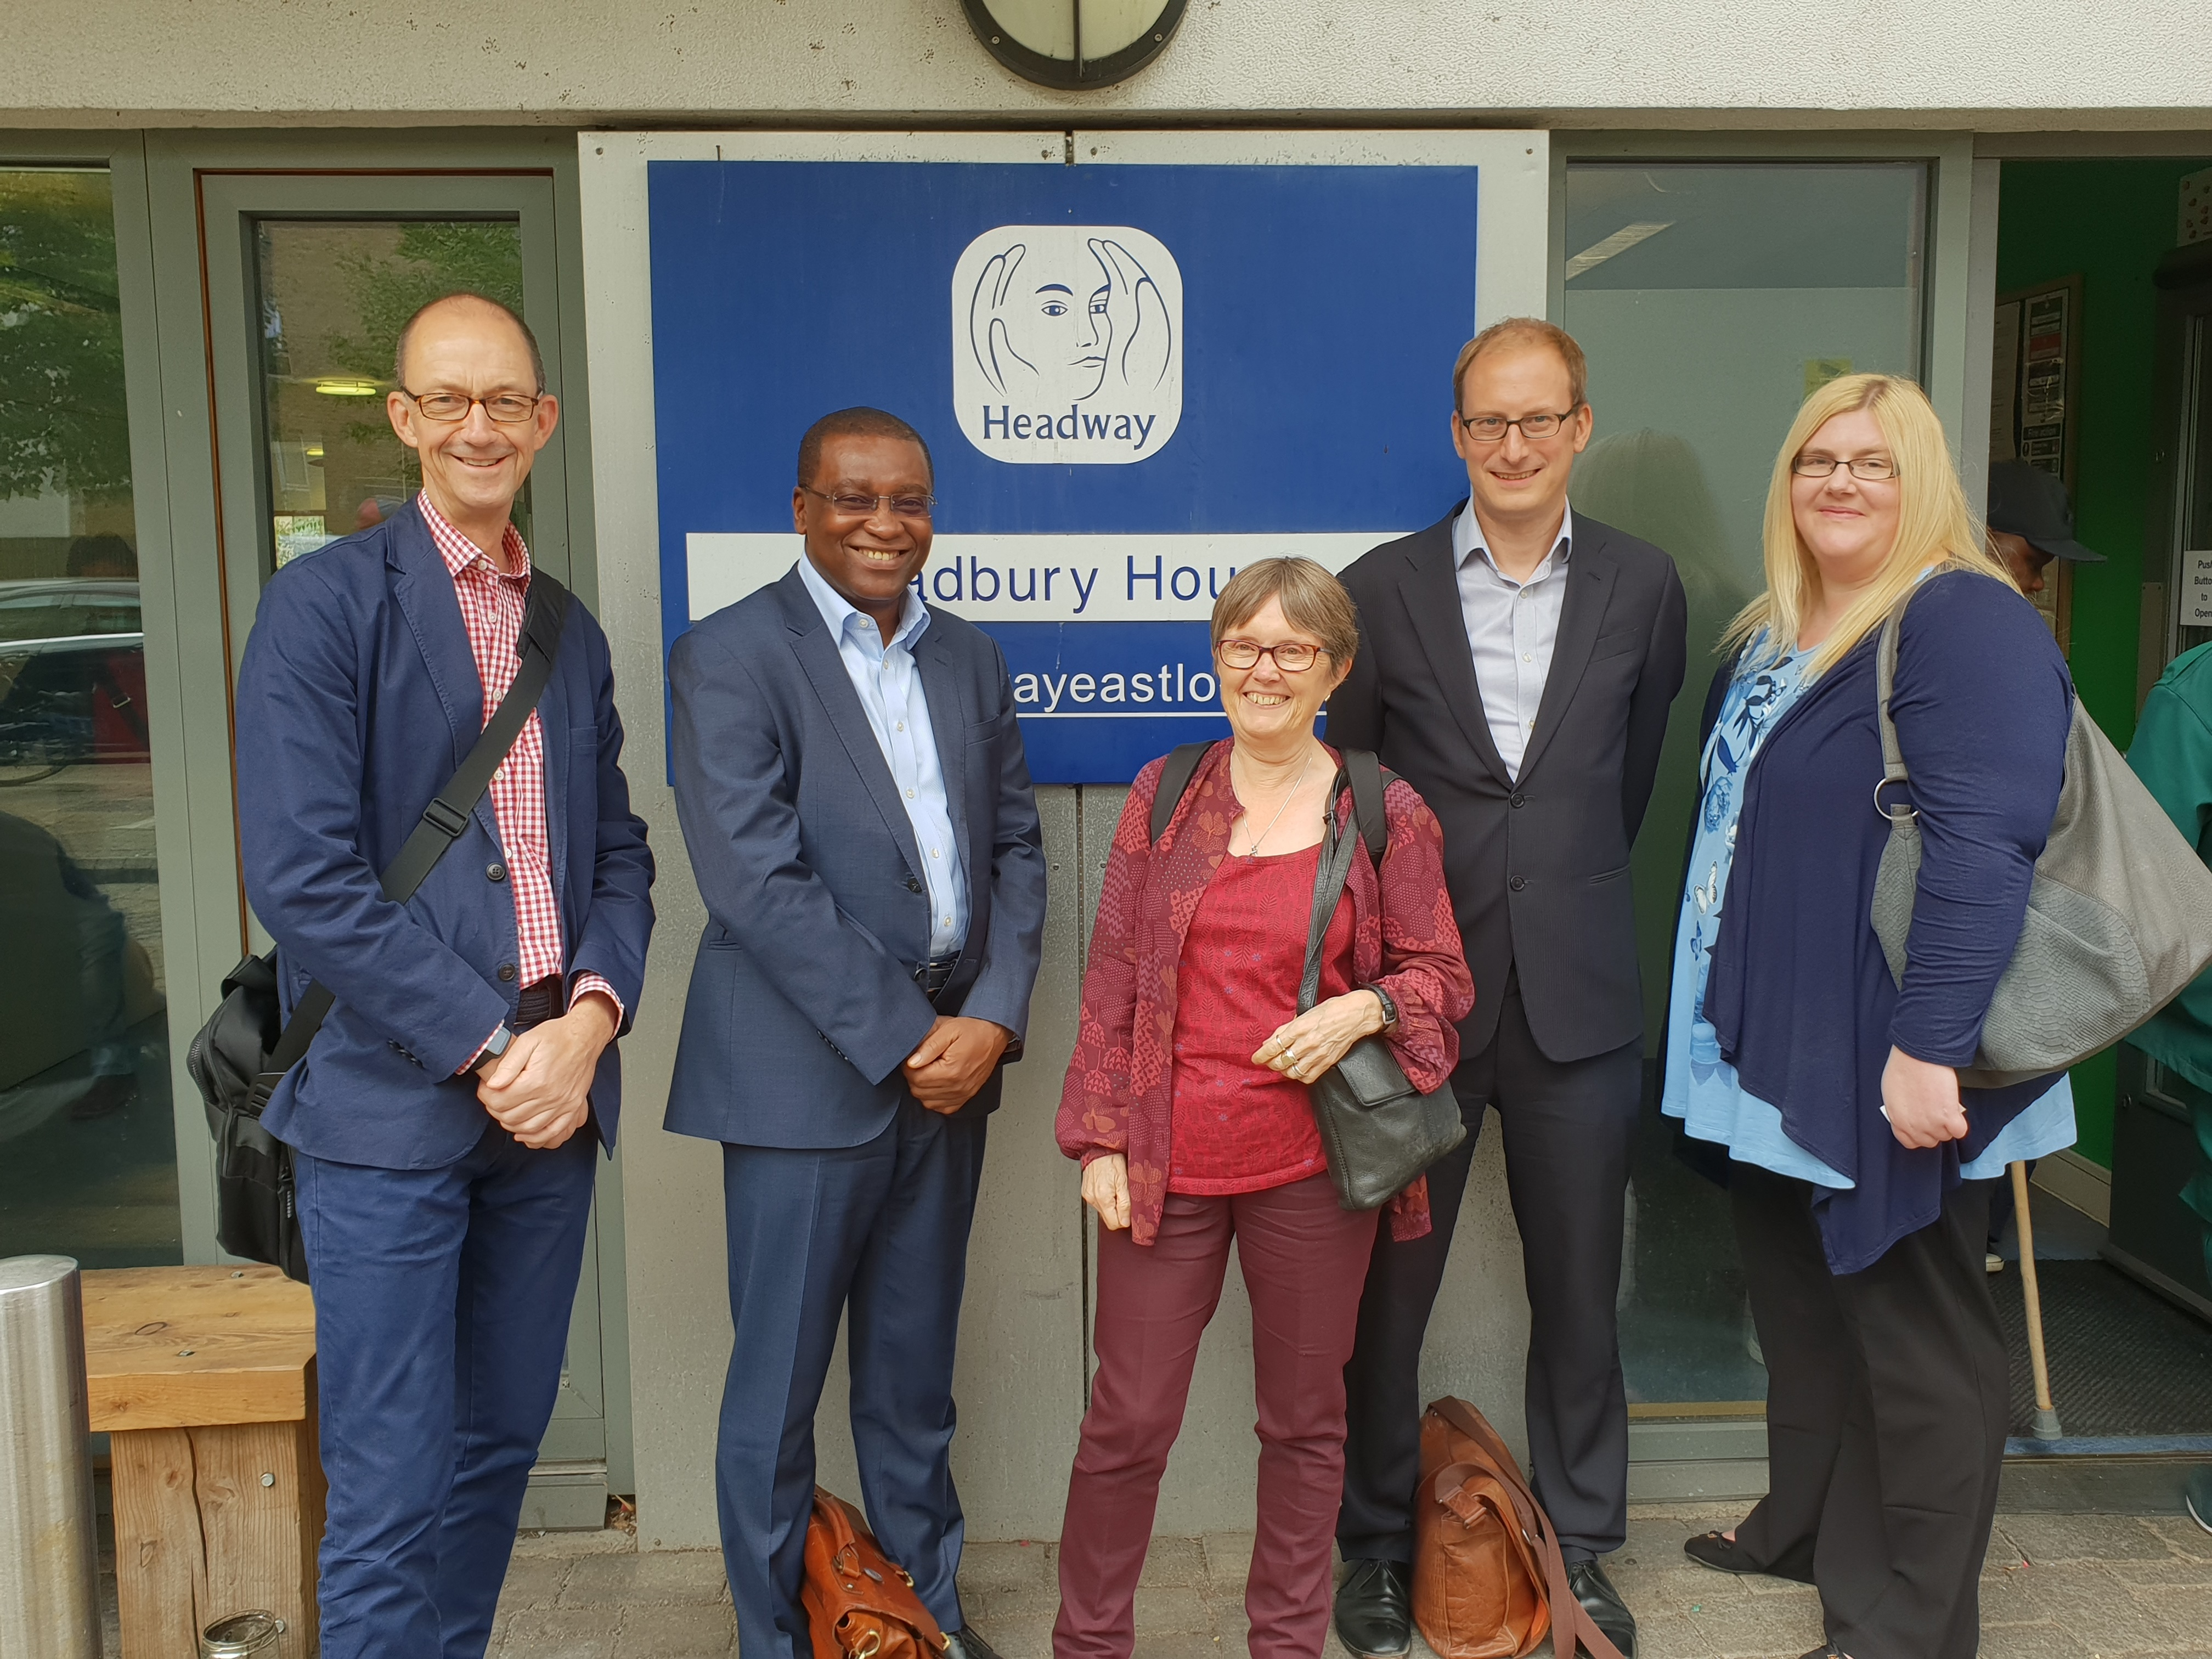 Social Security Advisory Committee members Phil Jones, Seyi Obakin, Liz Sayce, Carl Emmerson and Victoria Todd during a visit to Headway.